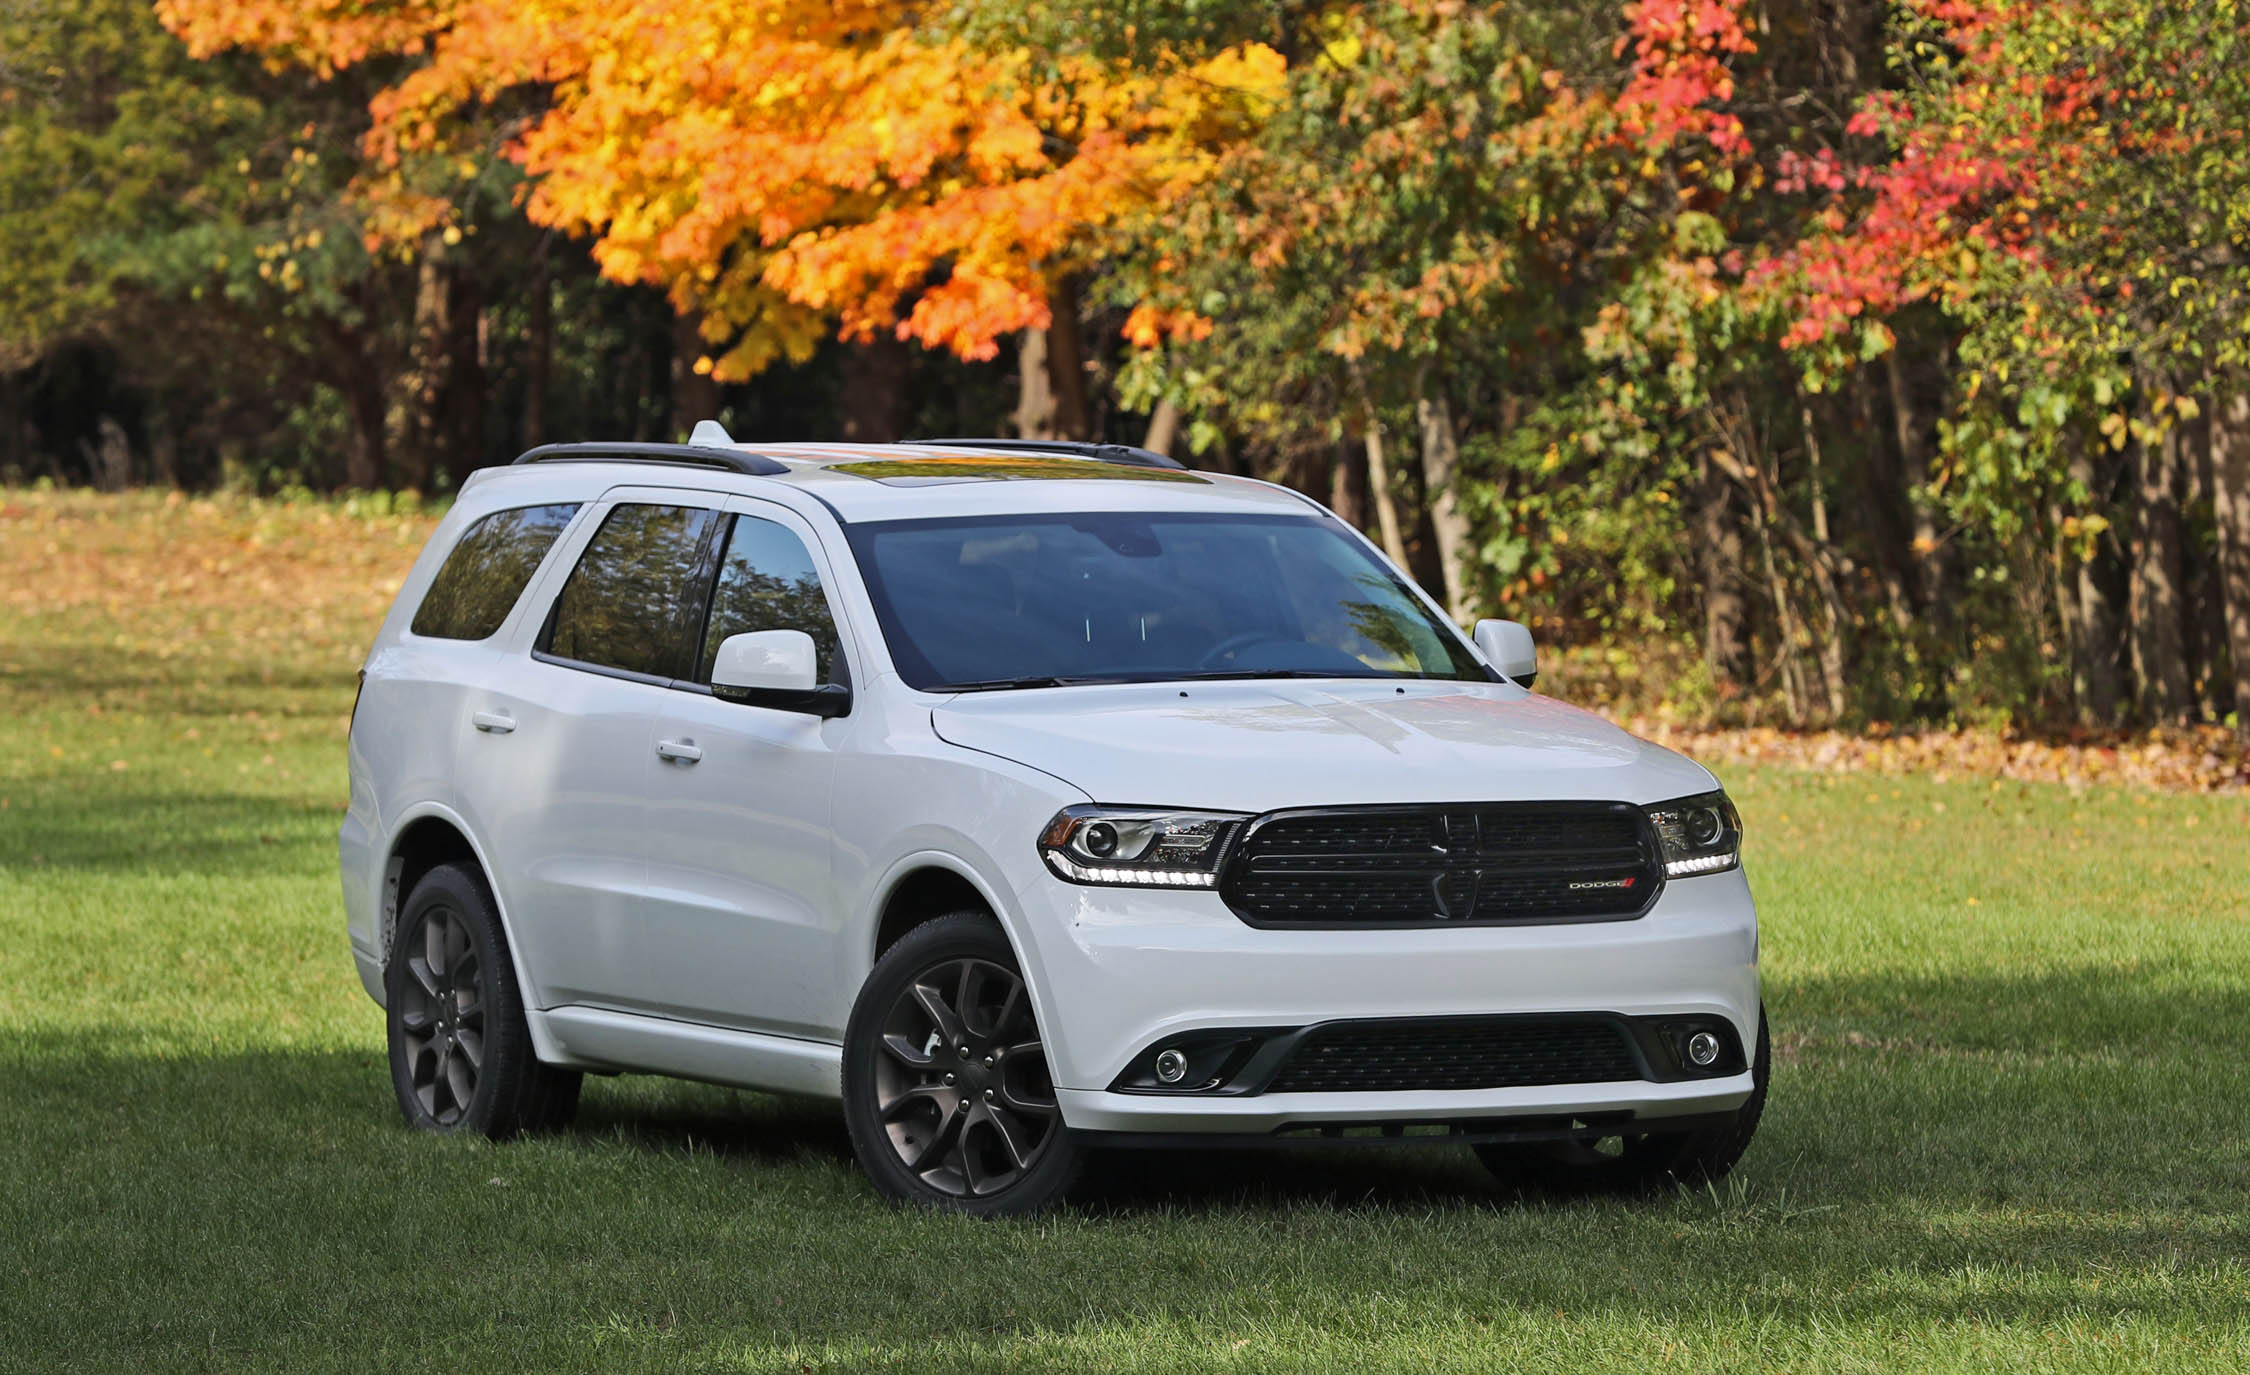 2017 Dodge Durango GT AWD (Photo 8 of 12)